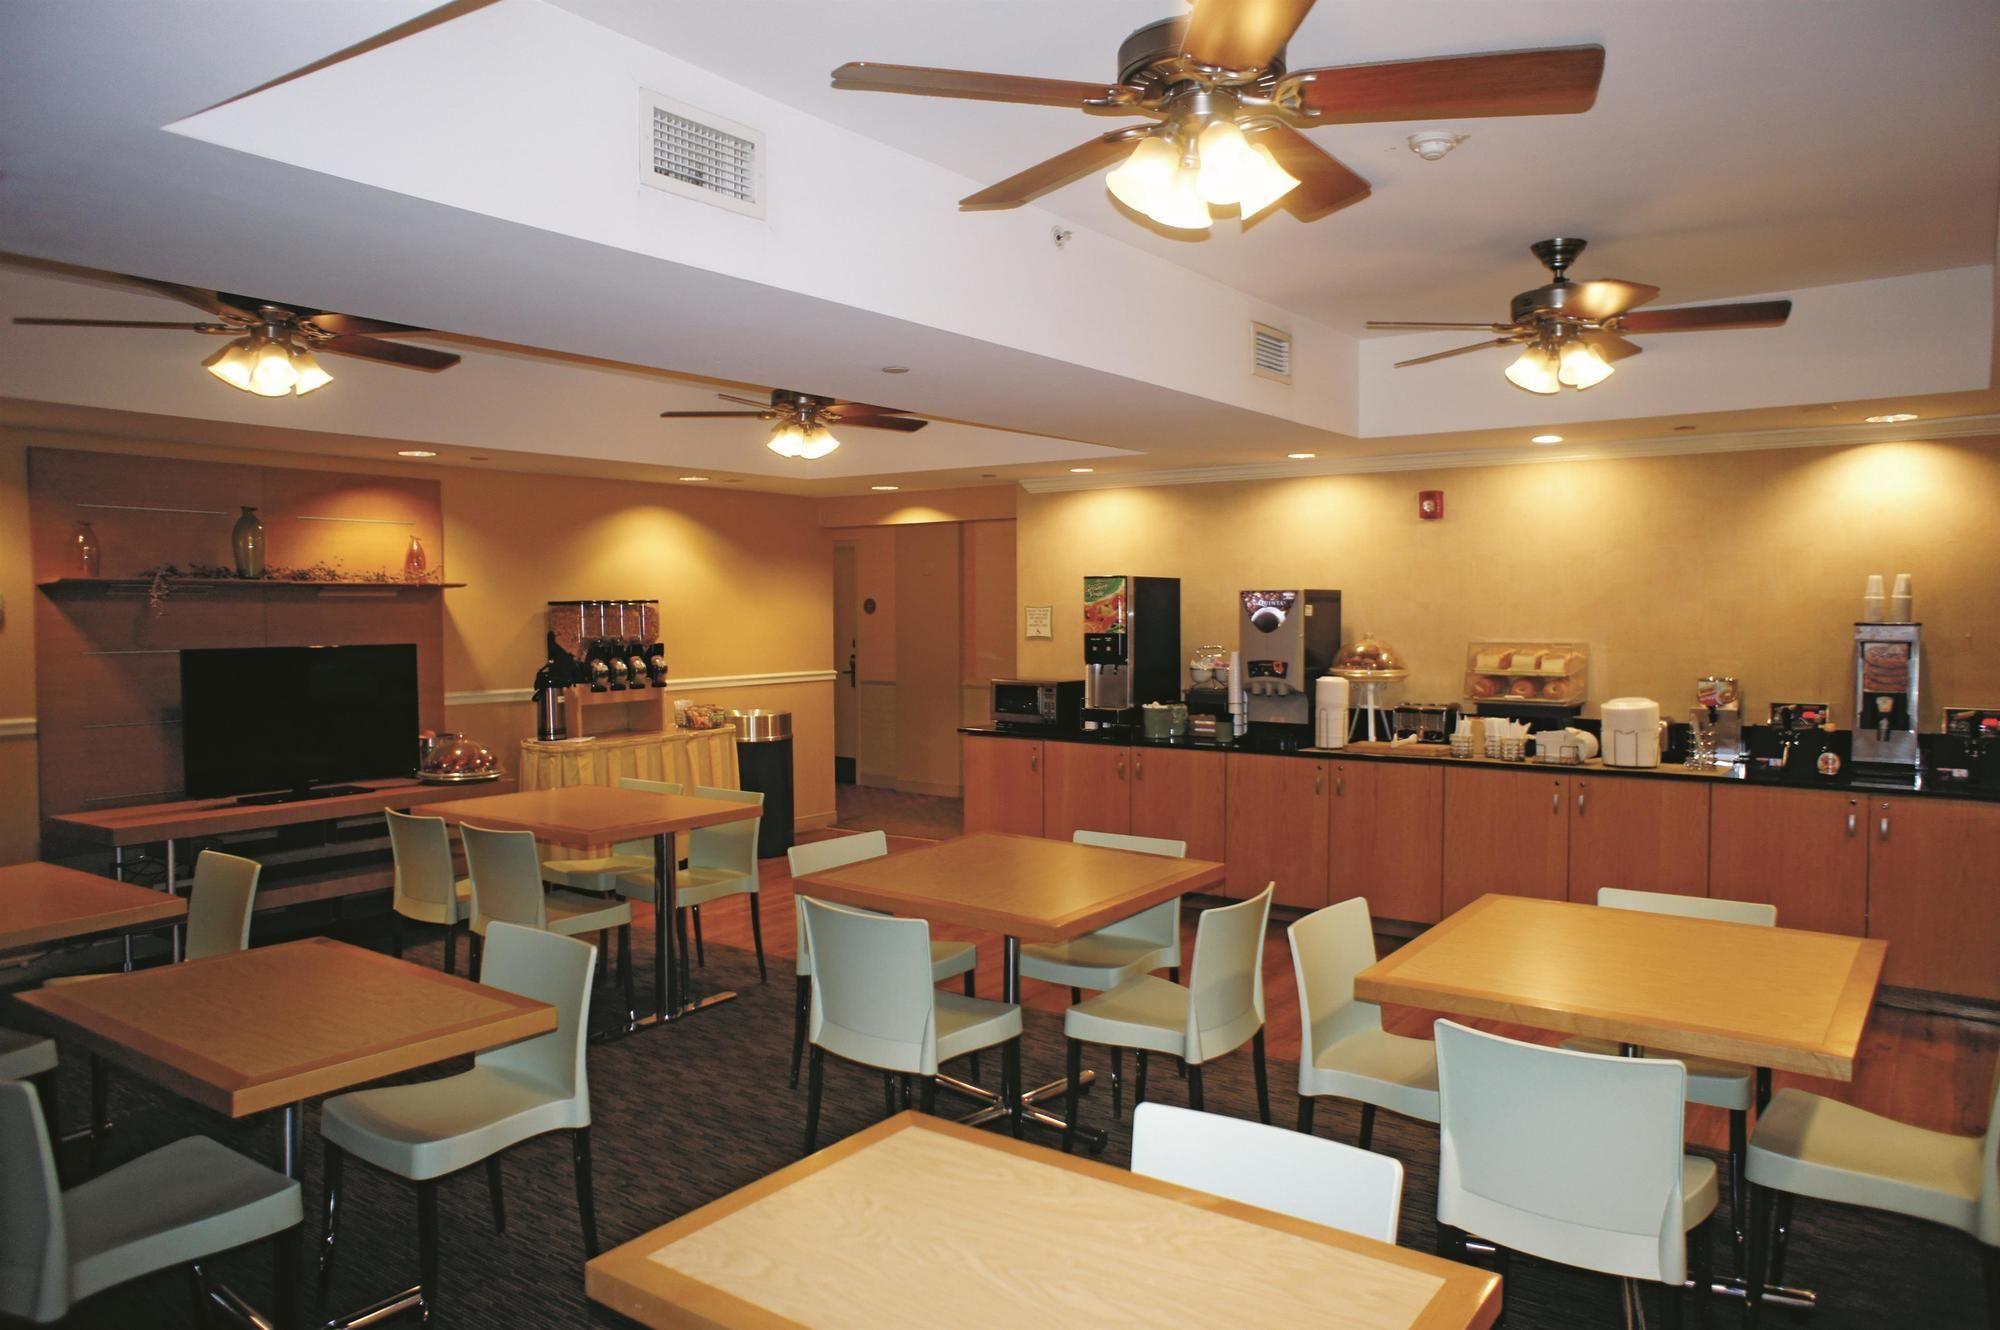 Sarasota Hotel Coupons for Sarasota, Florida - FreeHotelCoupons.com